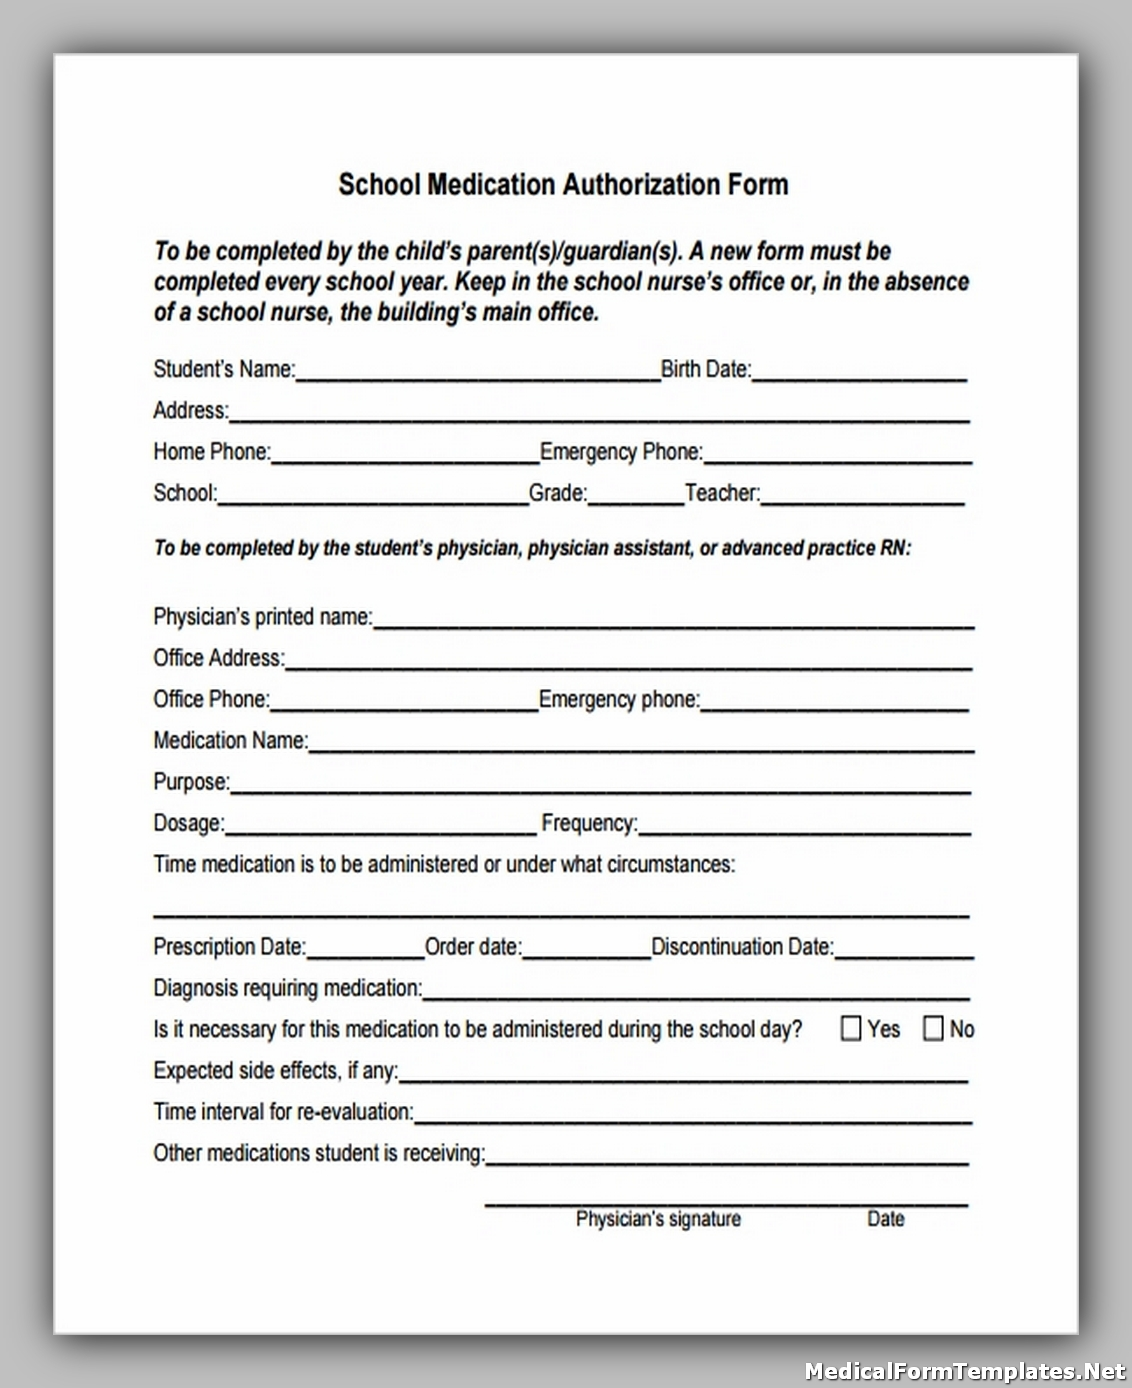 School Medication Authorization Form